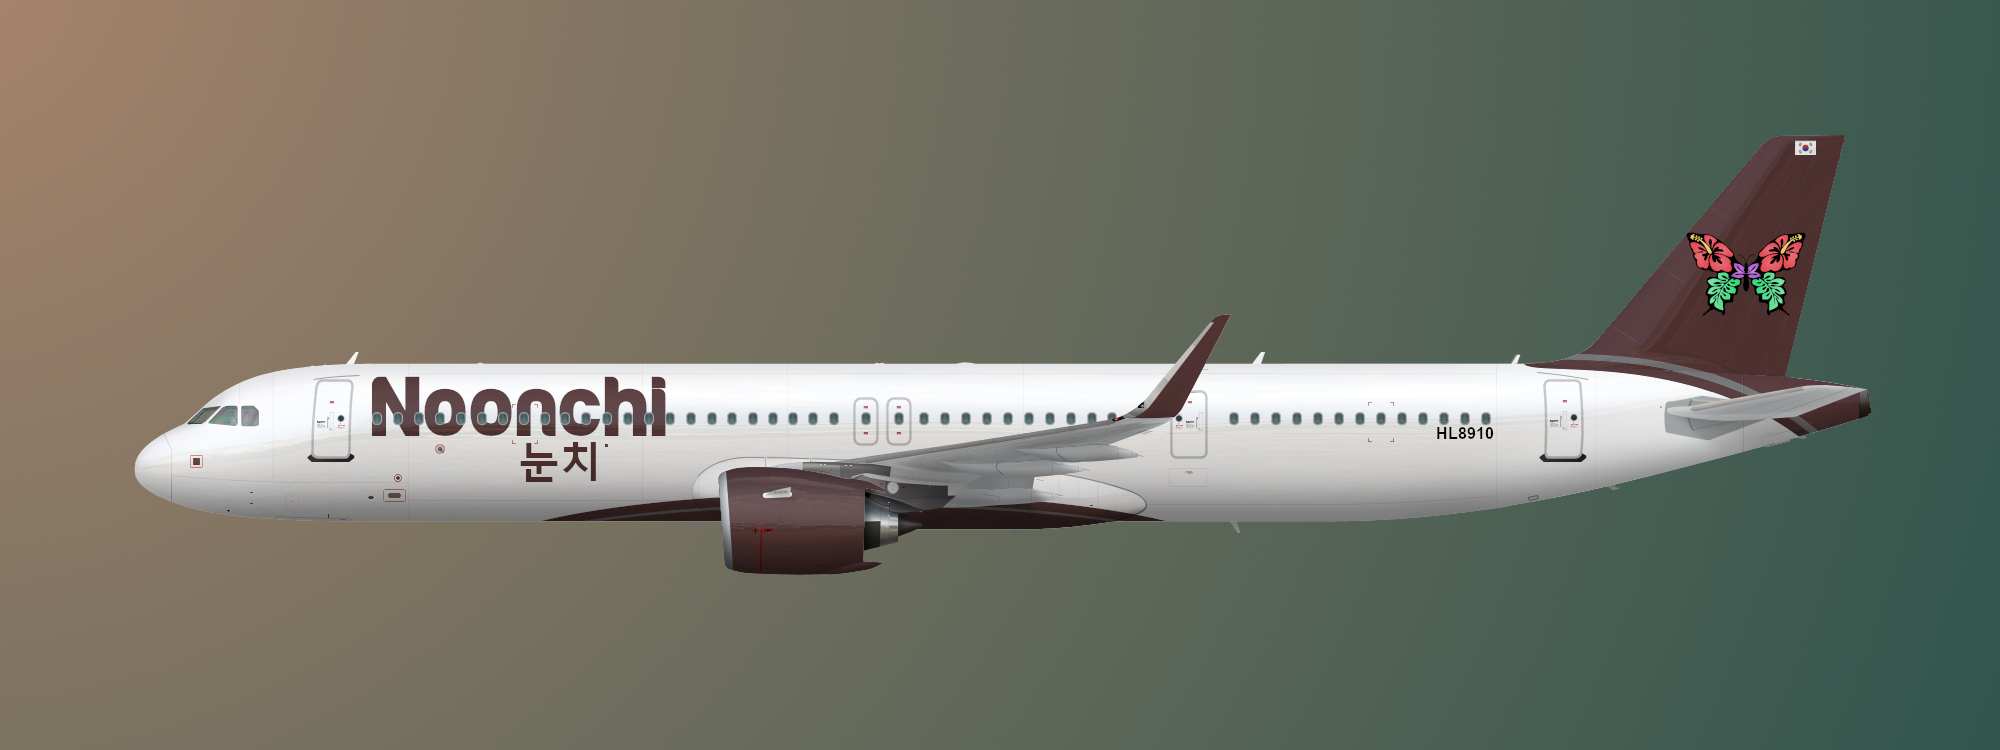 noonAirbus_A321neo.png